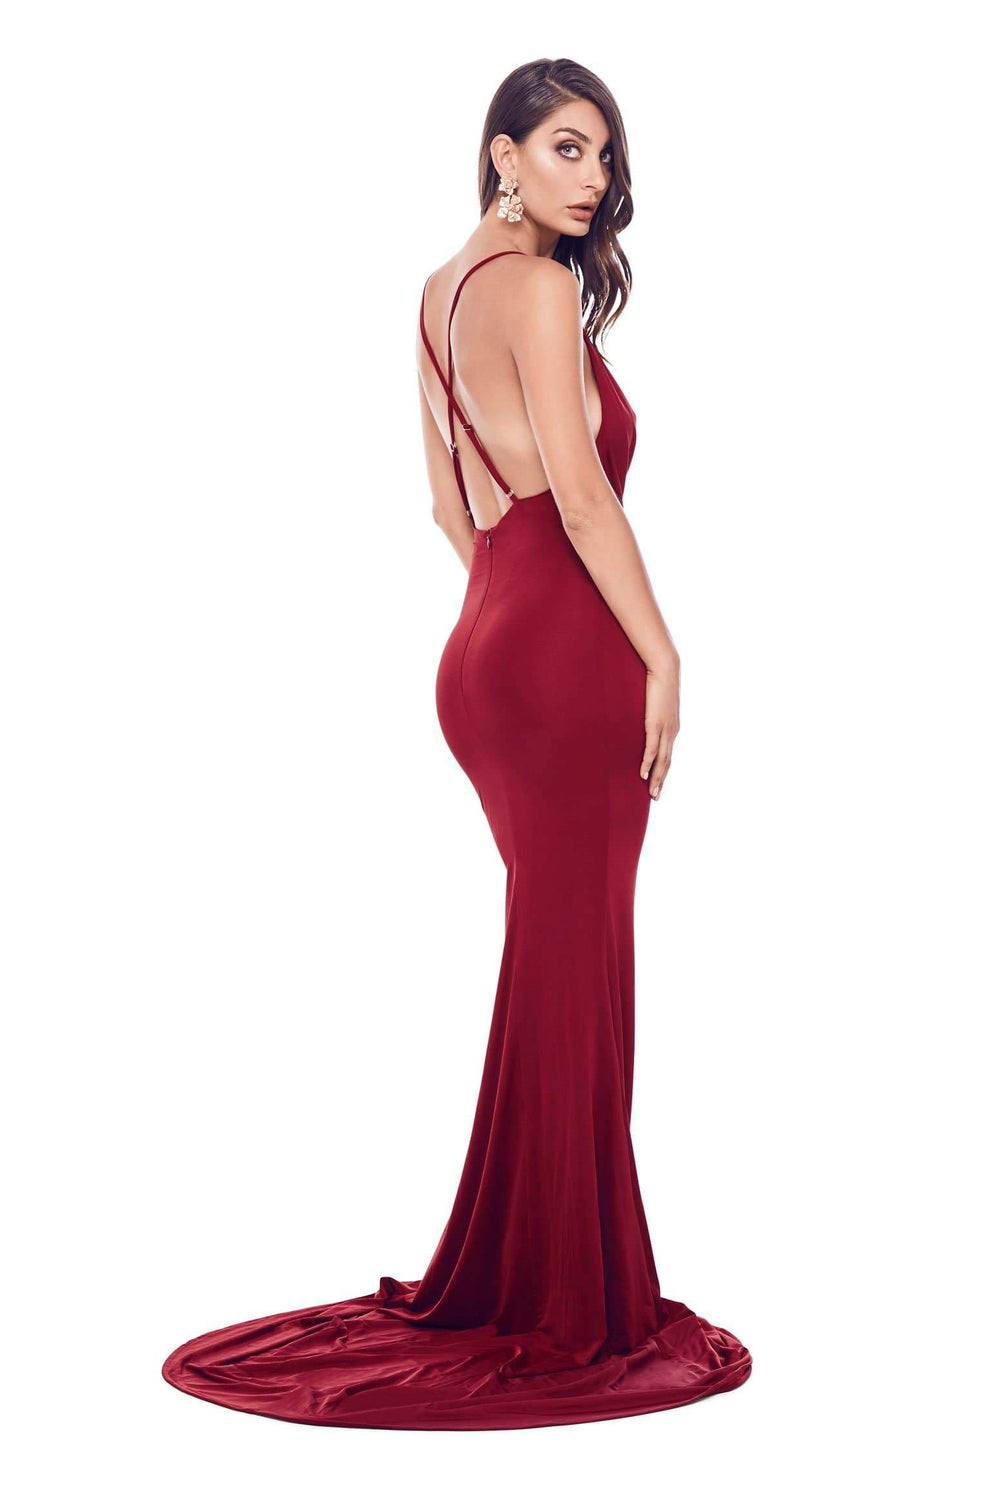 Antonia - Wine Red Jersey Gown with Cowl Neckline and Low Back